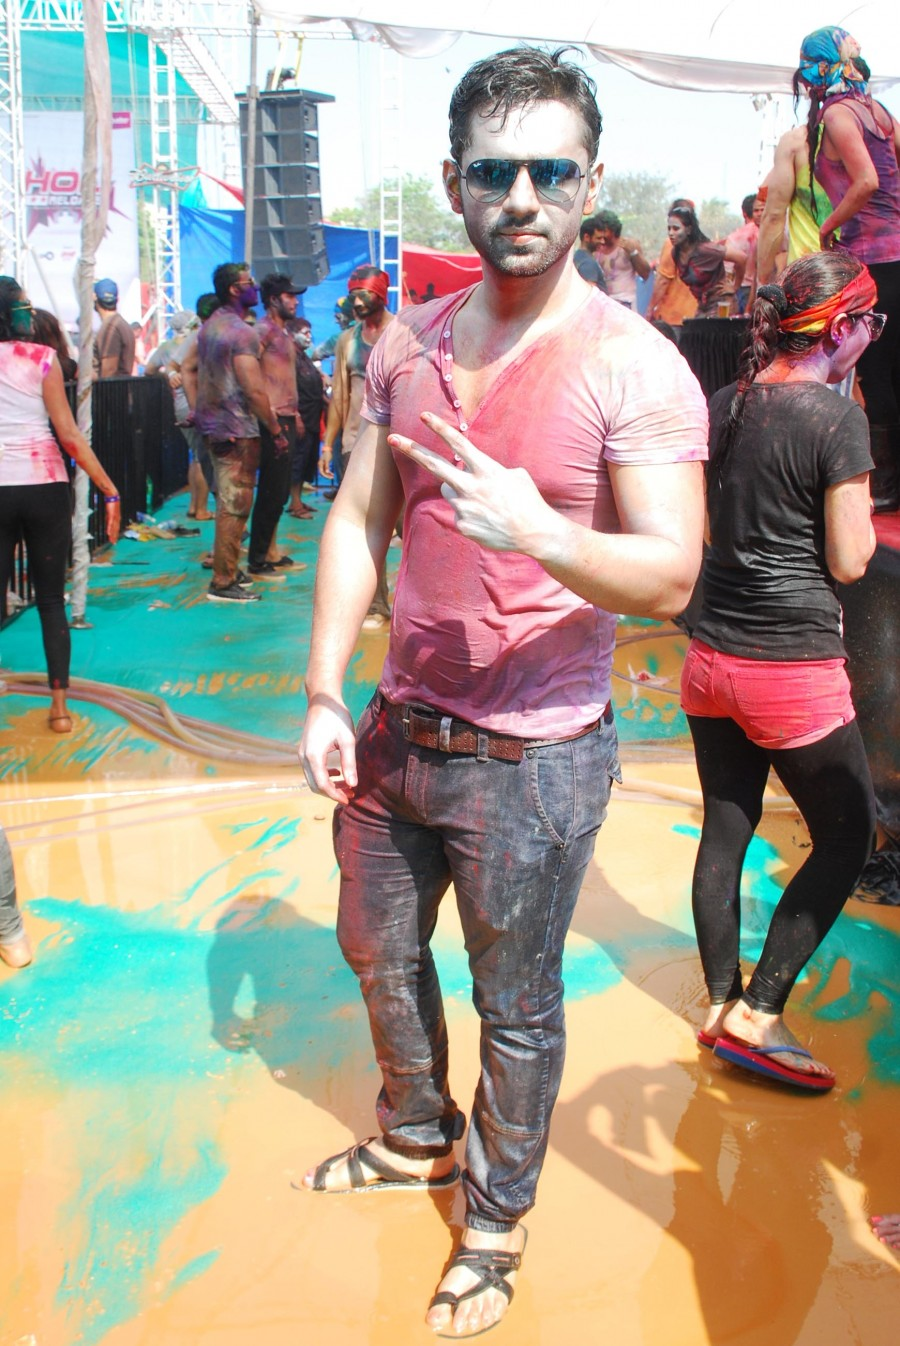 Holi celebration,holi 2015,#HappyHoli,TV actors,Television industry,kushal tandon,Bigg Boss,Apurva Agnihotri,Kamya Punjabi,Plus91 Reloaded,Ganesh Acharya,Hey Bro,Photos